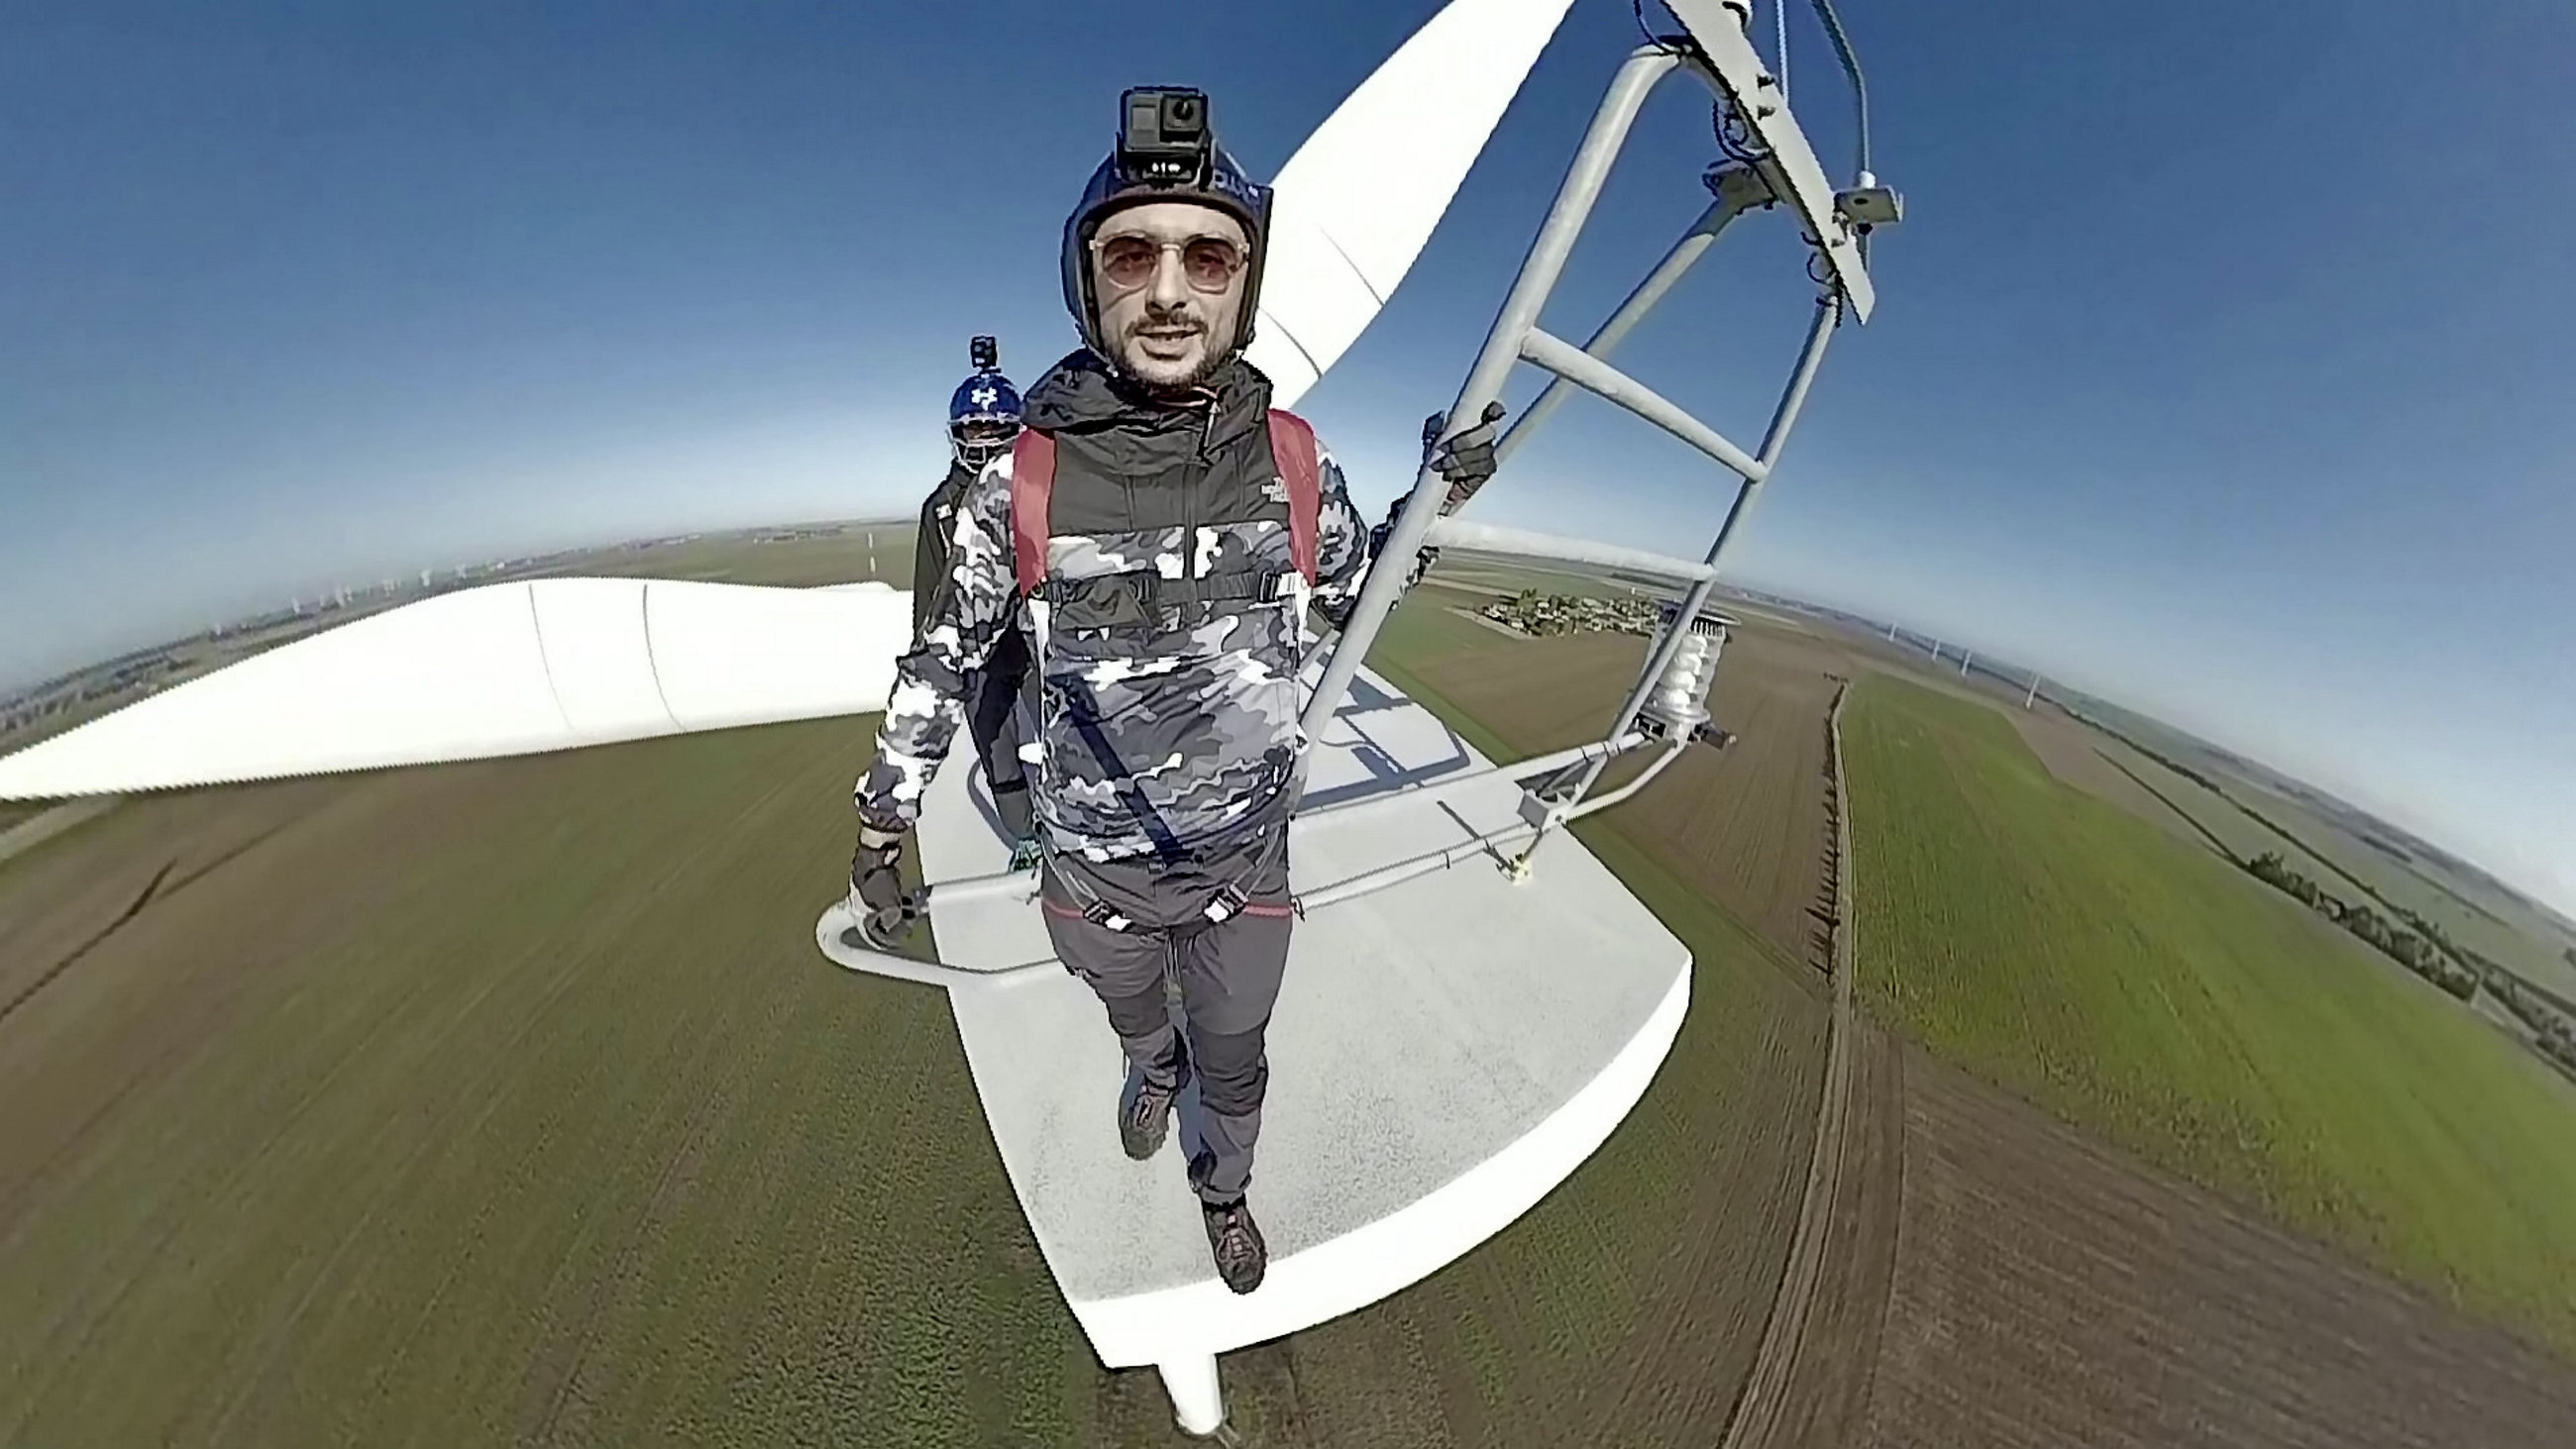 "A daring BASE jumper performed a perfect 'low level' stunt from a wind turbine but ended up face-planting the ground after he literally ploughed into a field. Kevin Marret, 28, had a lucky escape - with only his ego bruised - after the less than stellar landing after leaping off the 280ft turbine in the Midi- Pyrenees. The beautiful footage starts out well as Kevin jumps and freefalls for a moment before pulling his shoot. But he opened his chute a fraction of a second too late and, due to excessive forward momentum, ate dirt. Luckily Kevin was uninjured hurt and can see the funny side of the whole affair. Kevin, from Paris, France, said: ""I was visiting the location for Base jumping. I performed my chute pull too low, plus it was a bit windy. I need less delay before I pull next time."""